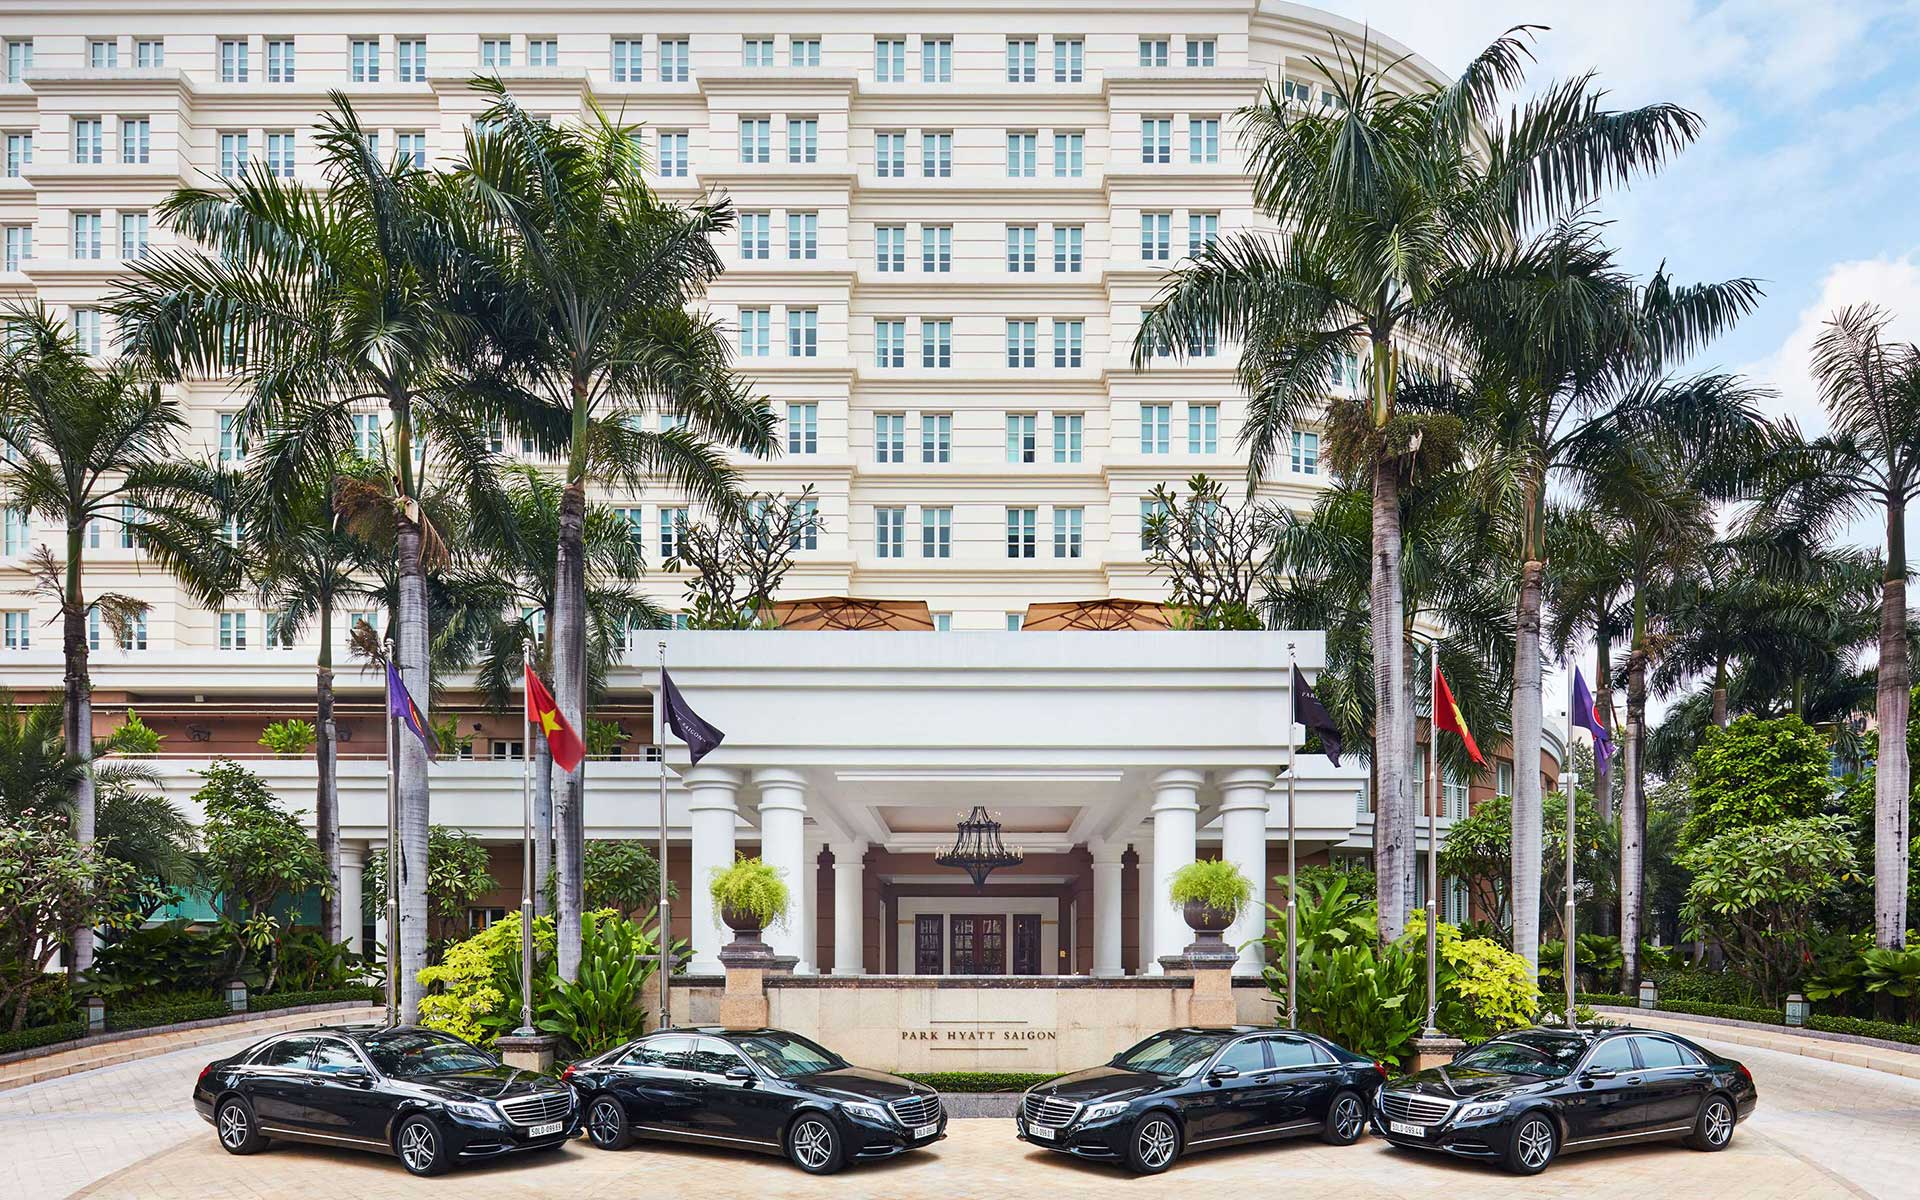 Main entrance to Park Hyatt Saigon